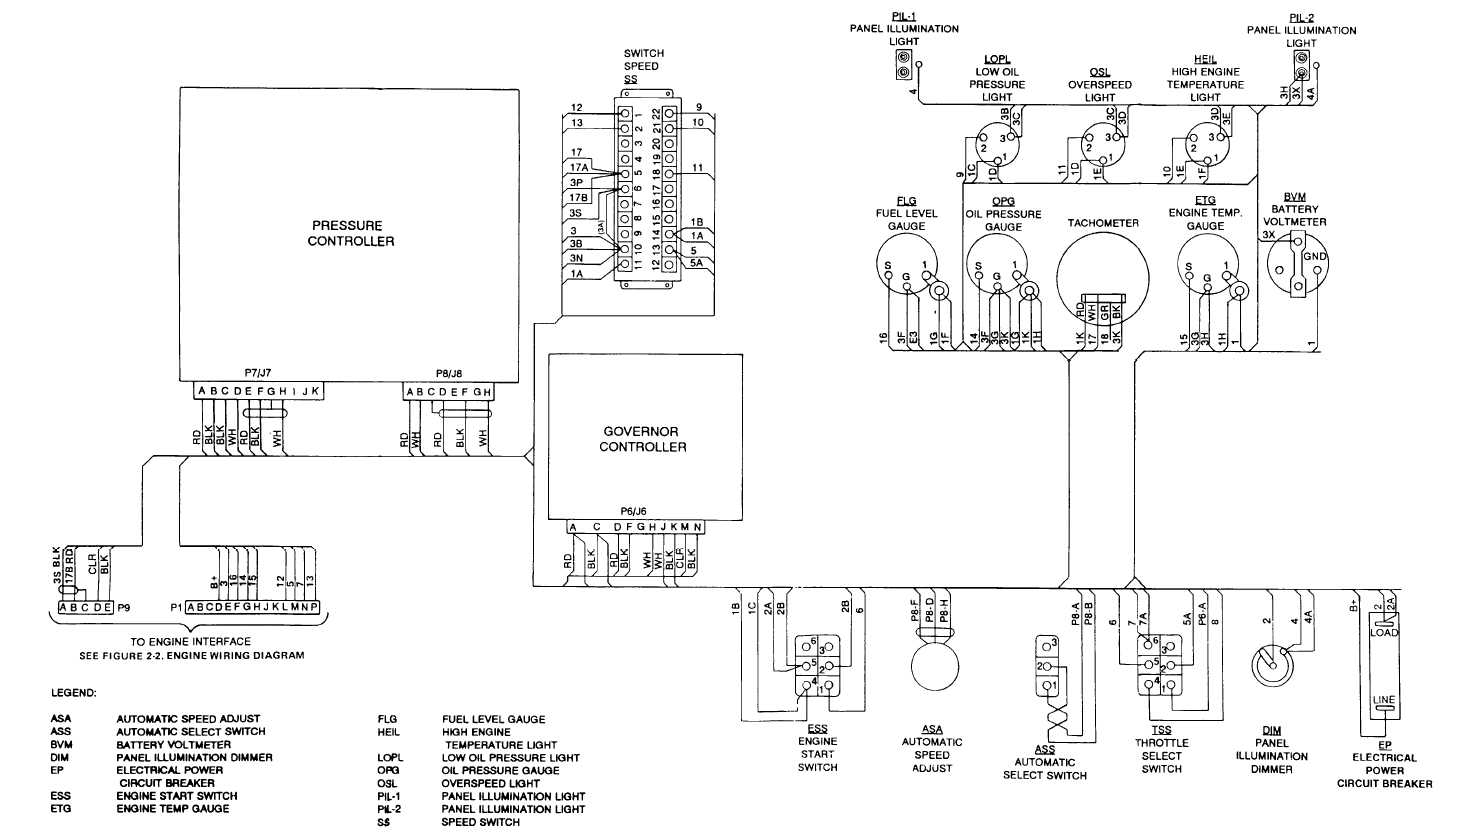 TM 10 4320 315 24_18_1 figure 2 1 control panel wiring diagram (sheet 1 of 4)